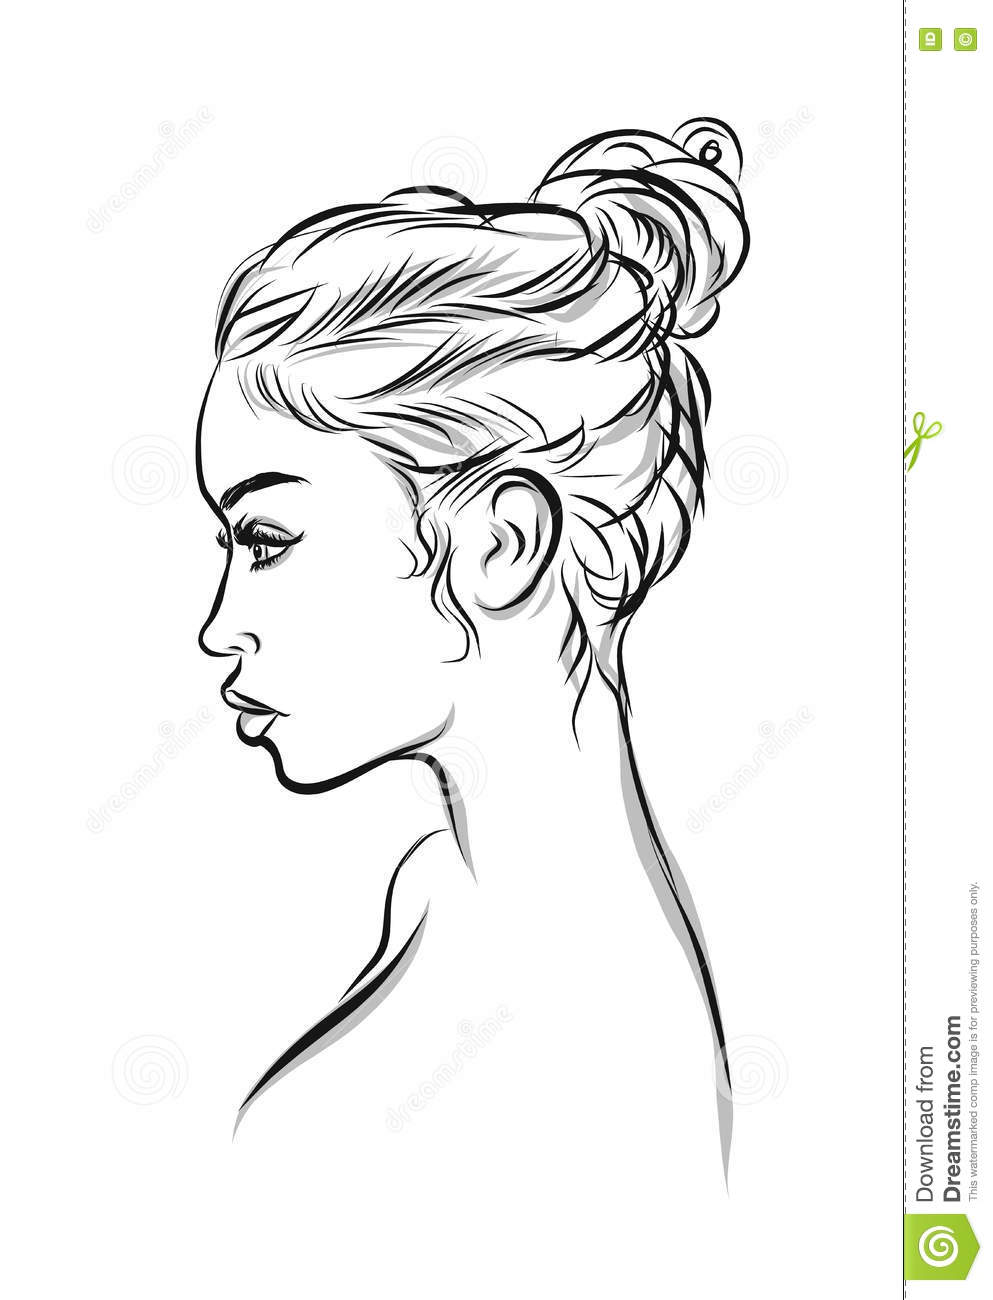 Line Drawing Woman : Beautiful black woman line art illustration stock vector